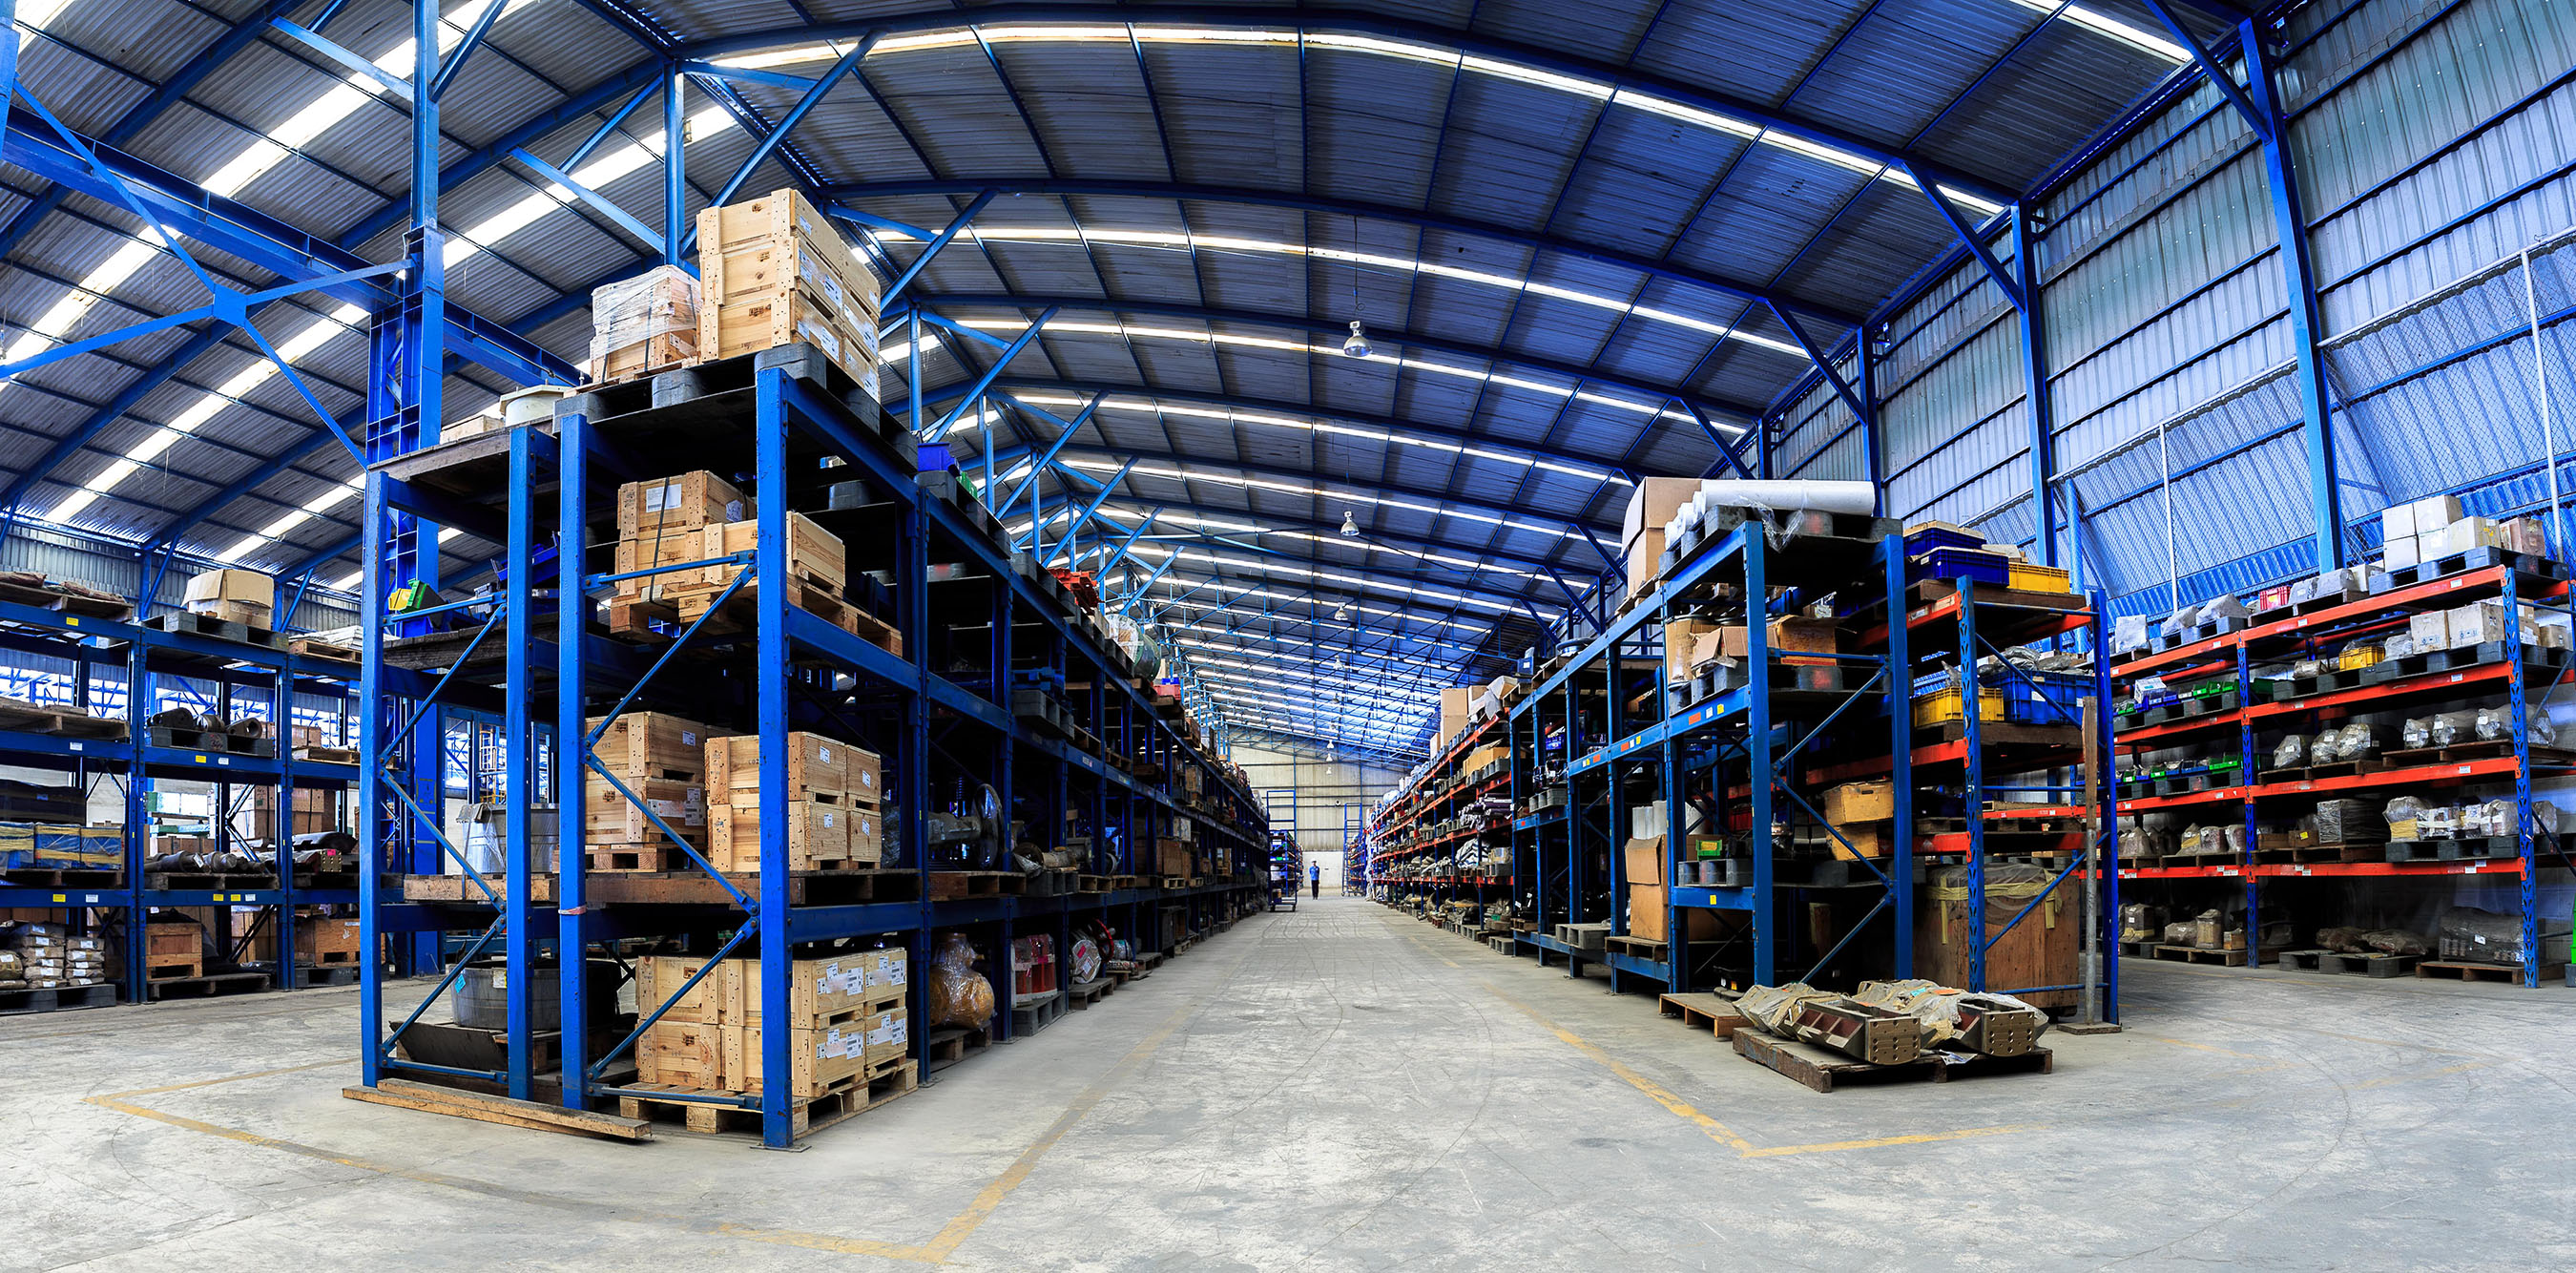 Warehouse View